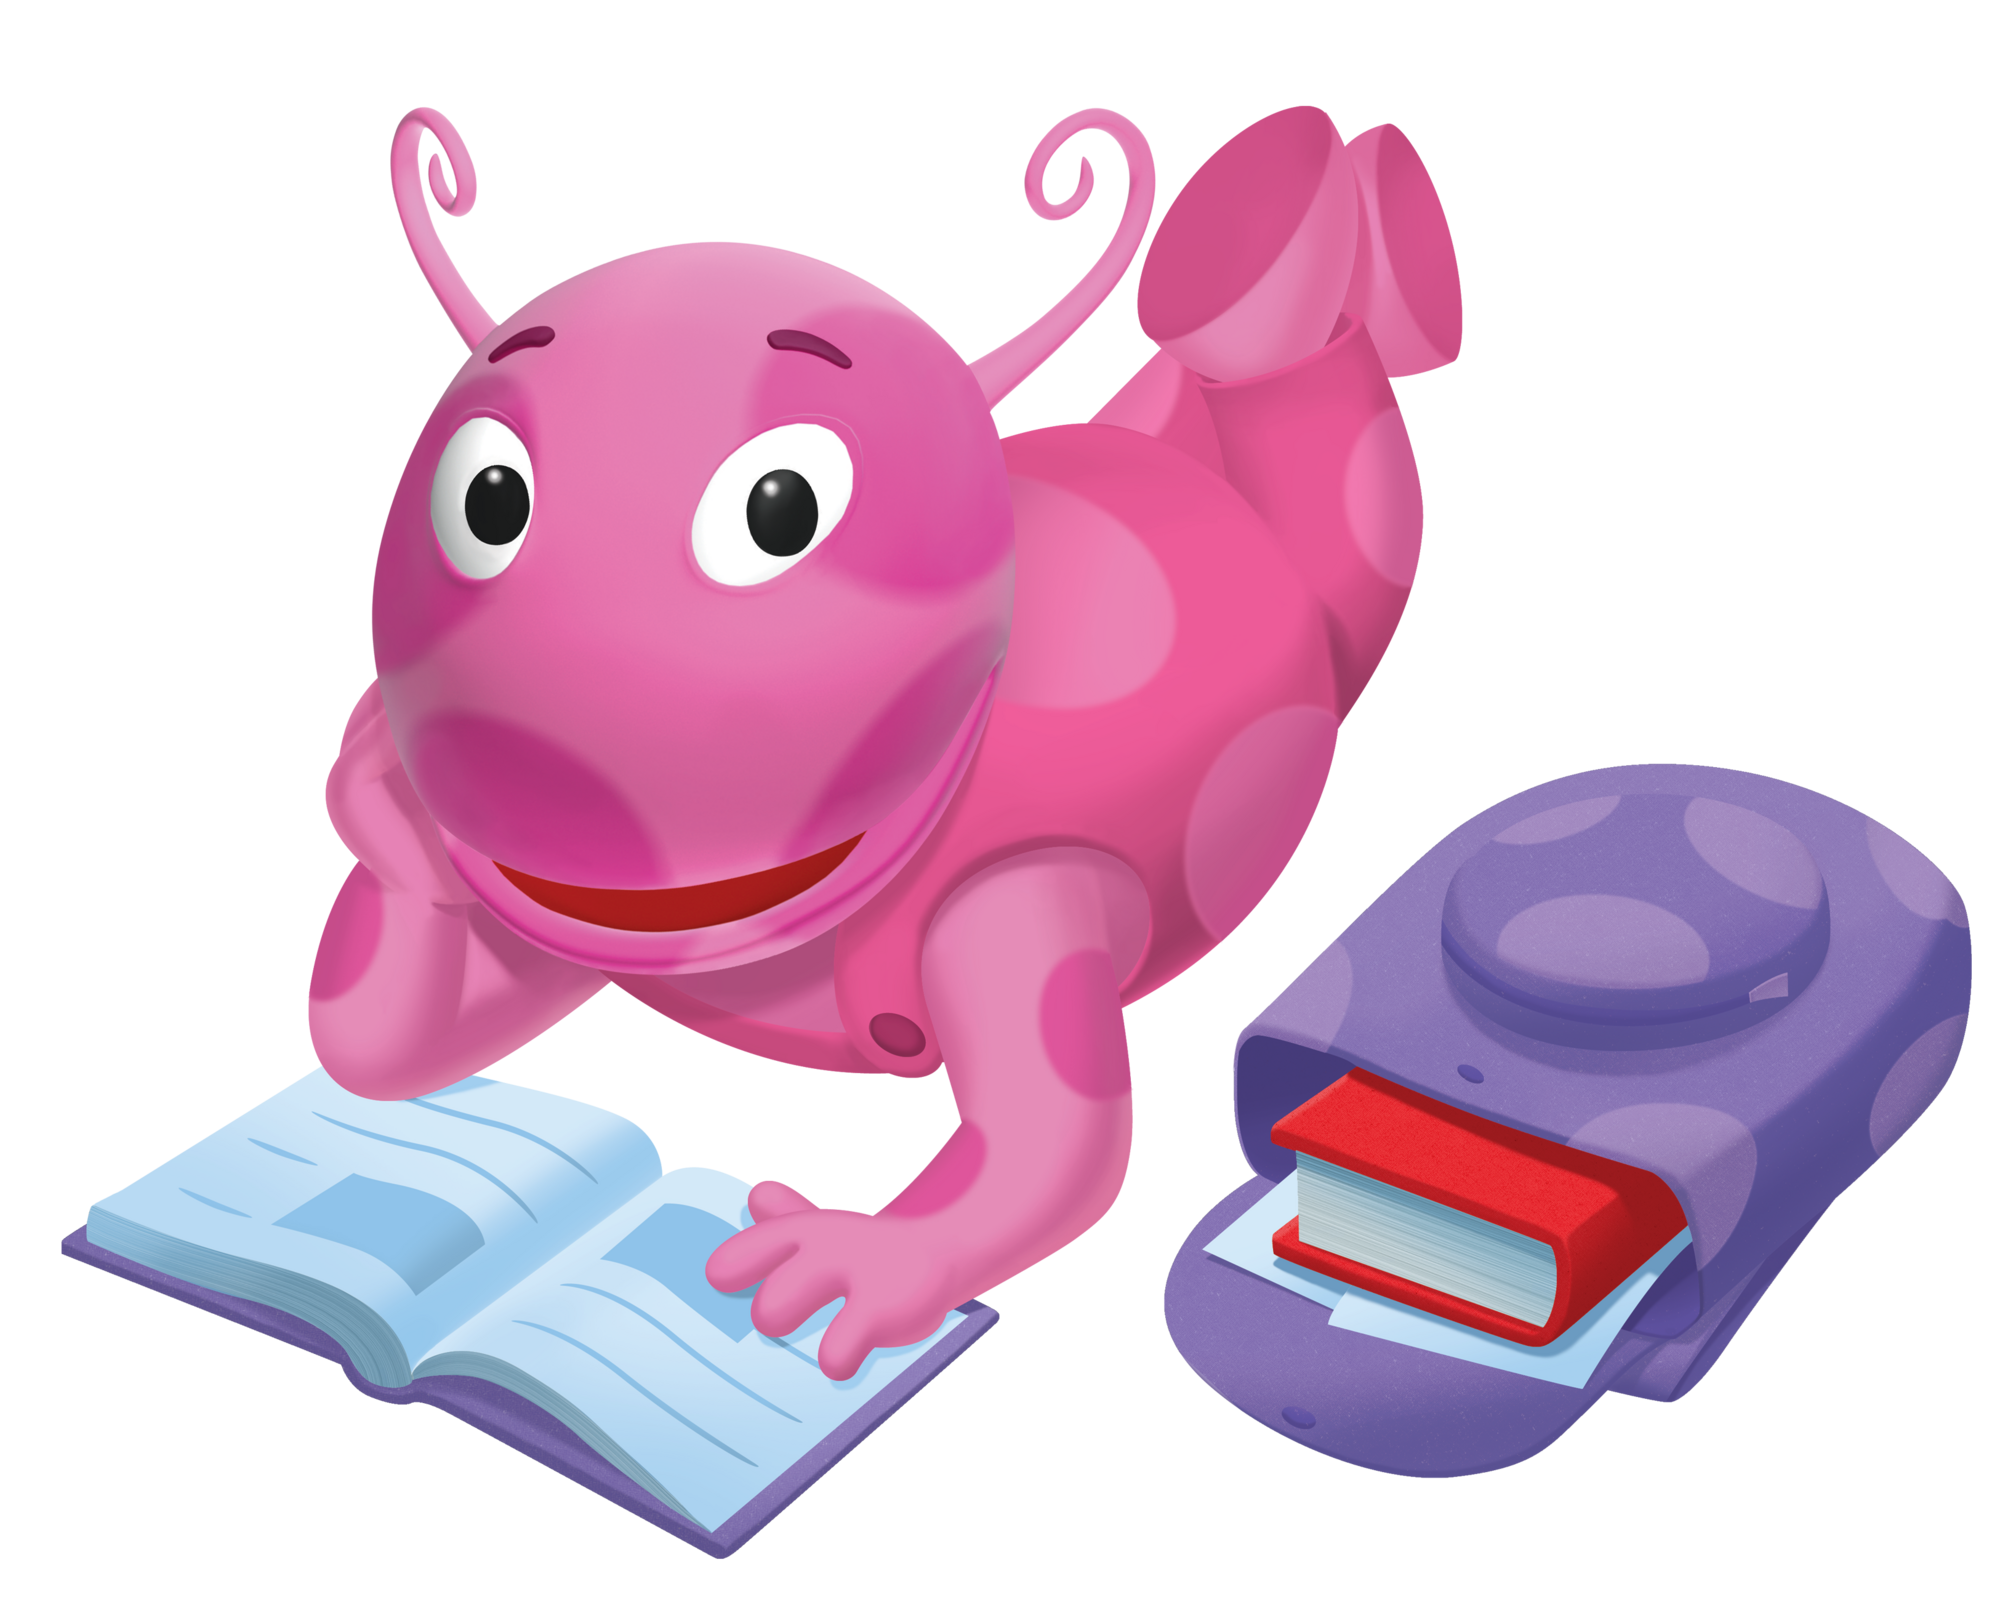 Uncategorized Pink Backyardigan uniquaimages the backyardigans wiki fandom powered by wikia uniqua backpack nickelodeon nick jr character image